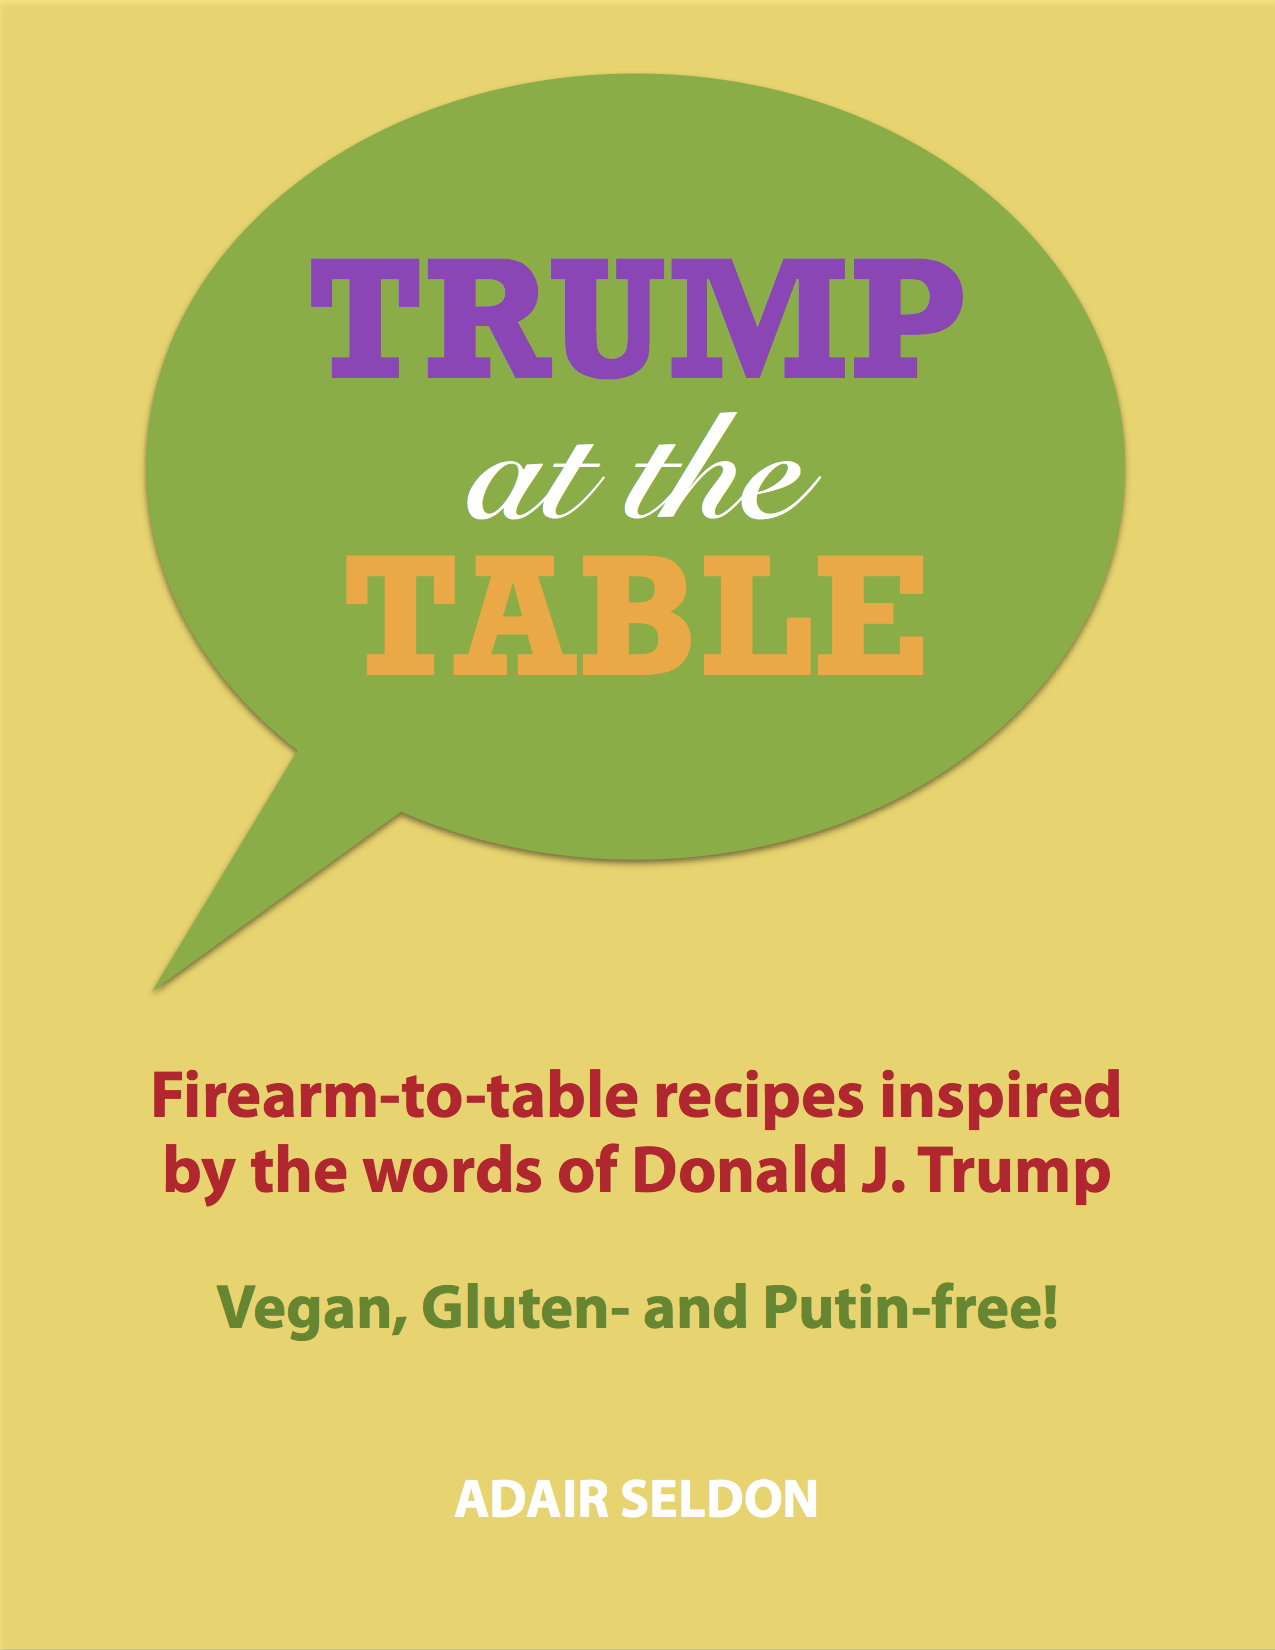 Adair Seldon's eCookbook, Trump at the Table